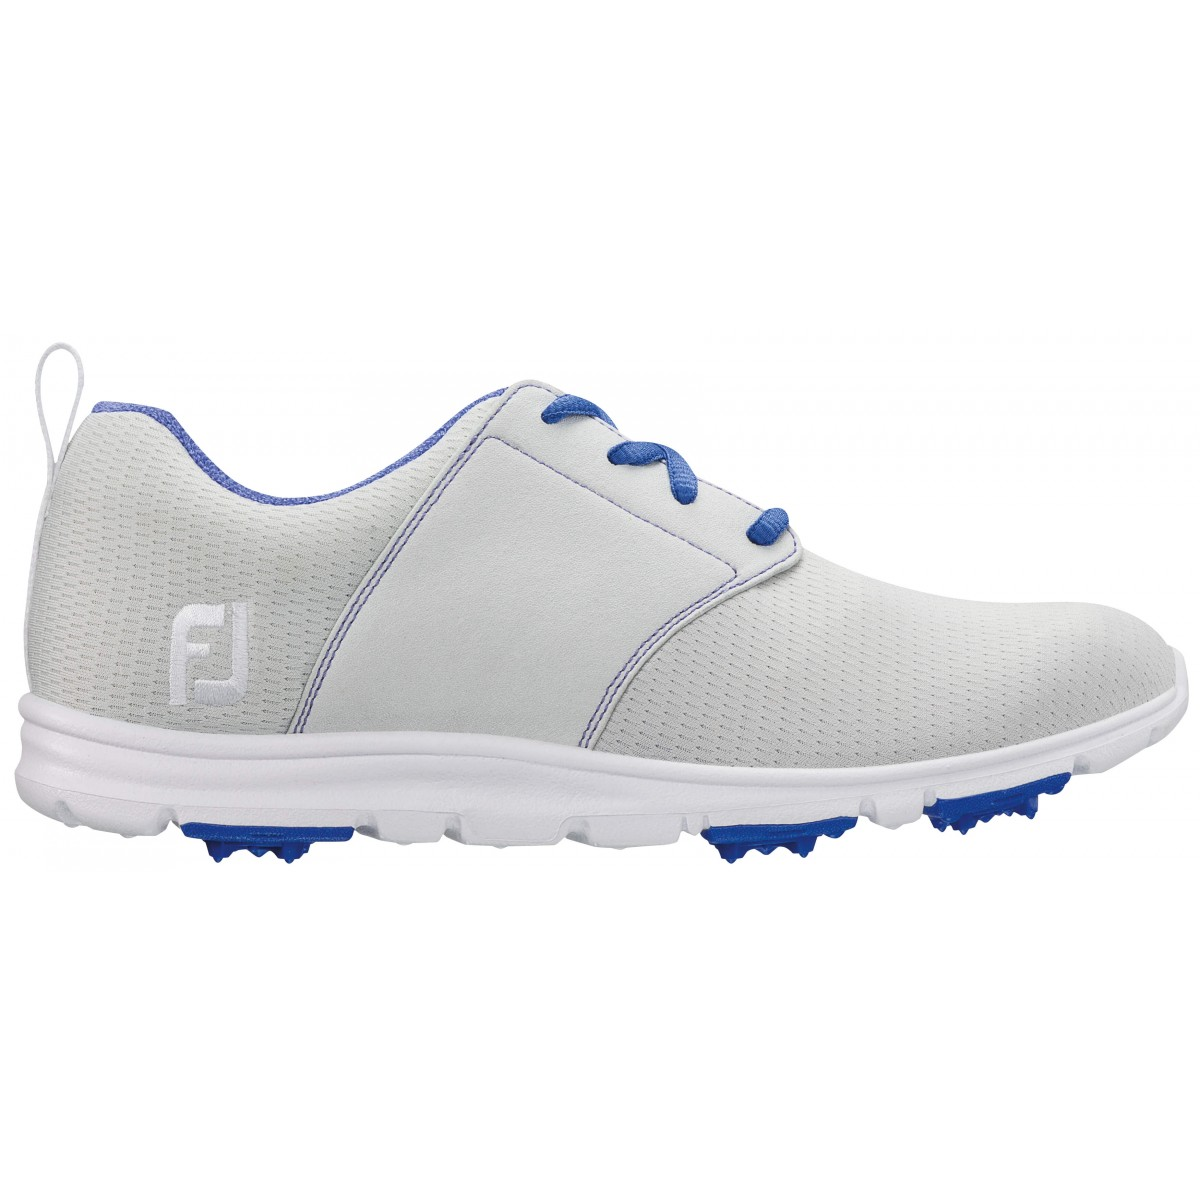 FootJoy Women's Enjoy Light Grey Golf Shoes - Closeout Style 95708